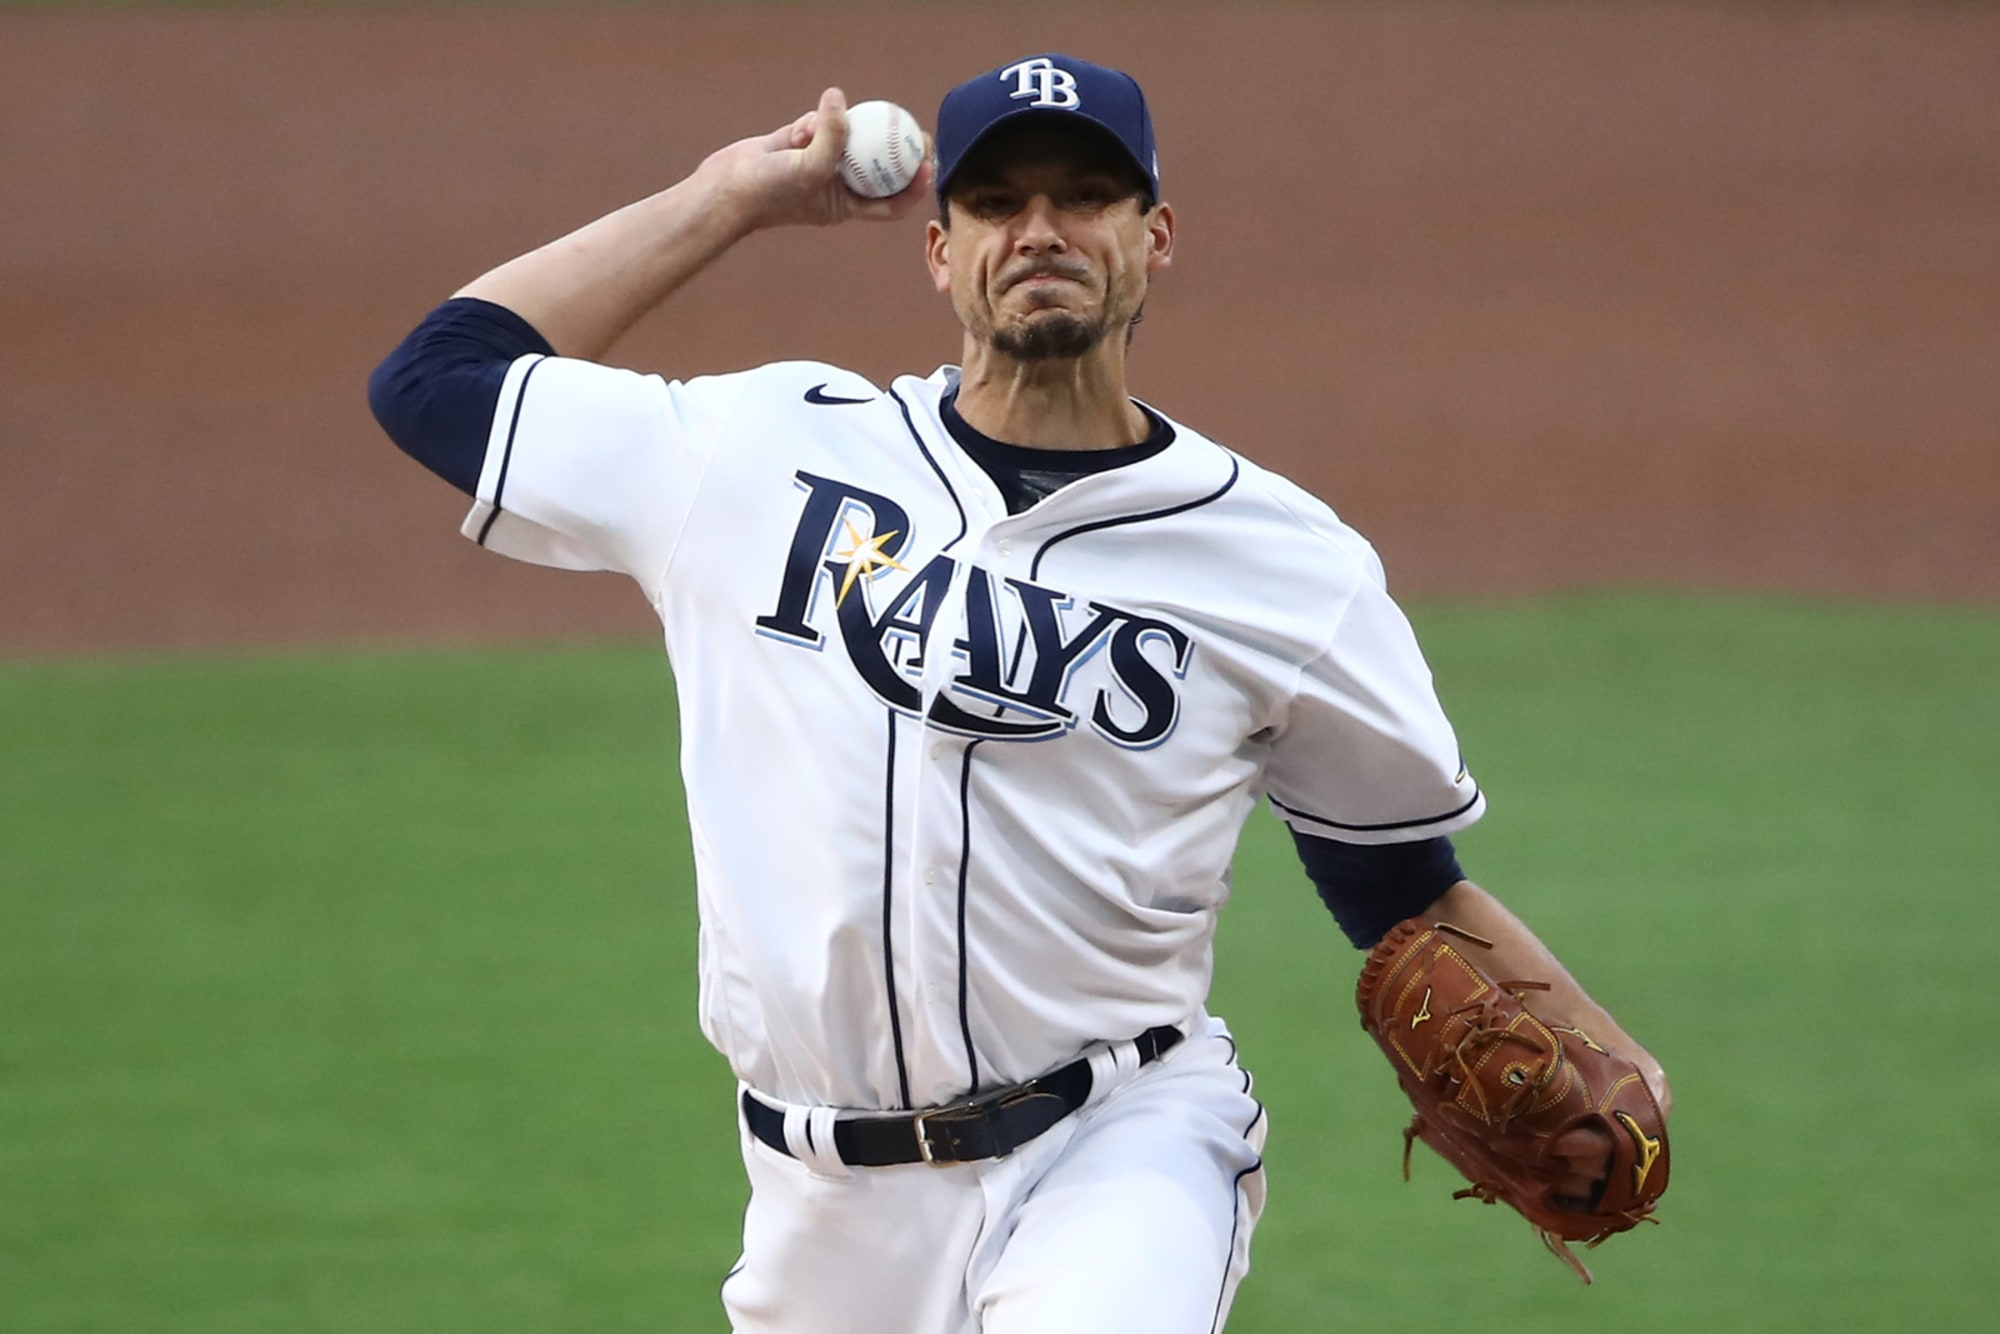 braves news charlie morton signs for 1 year 15m tomahawk take